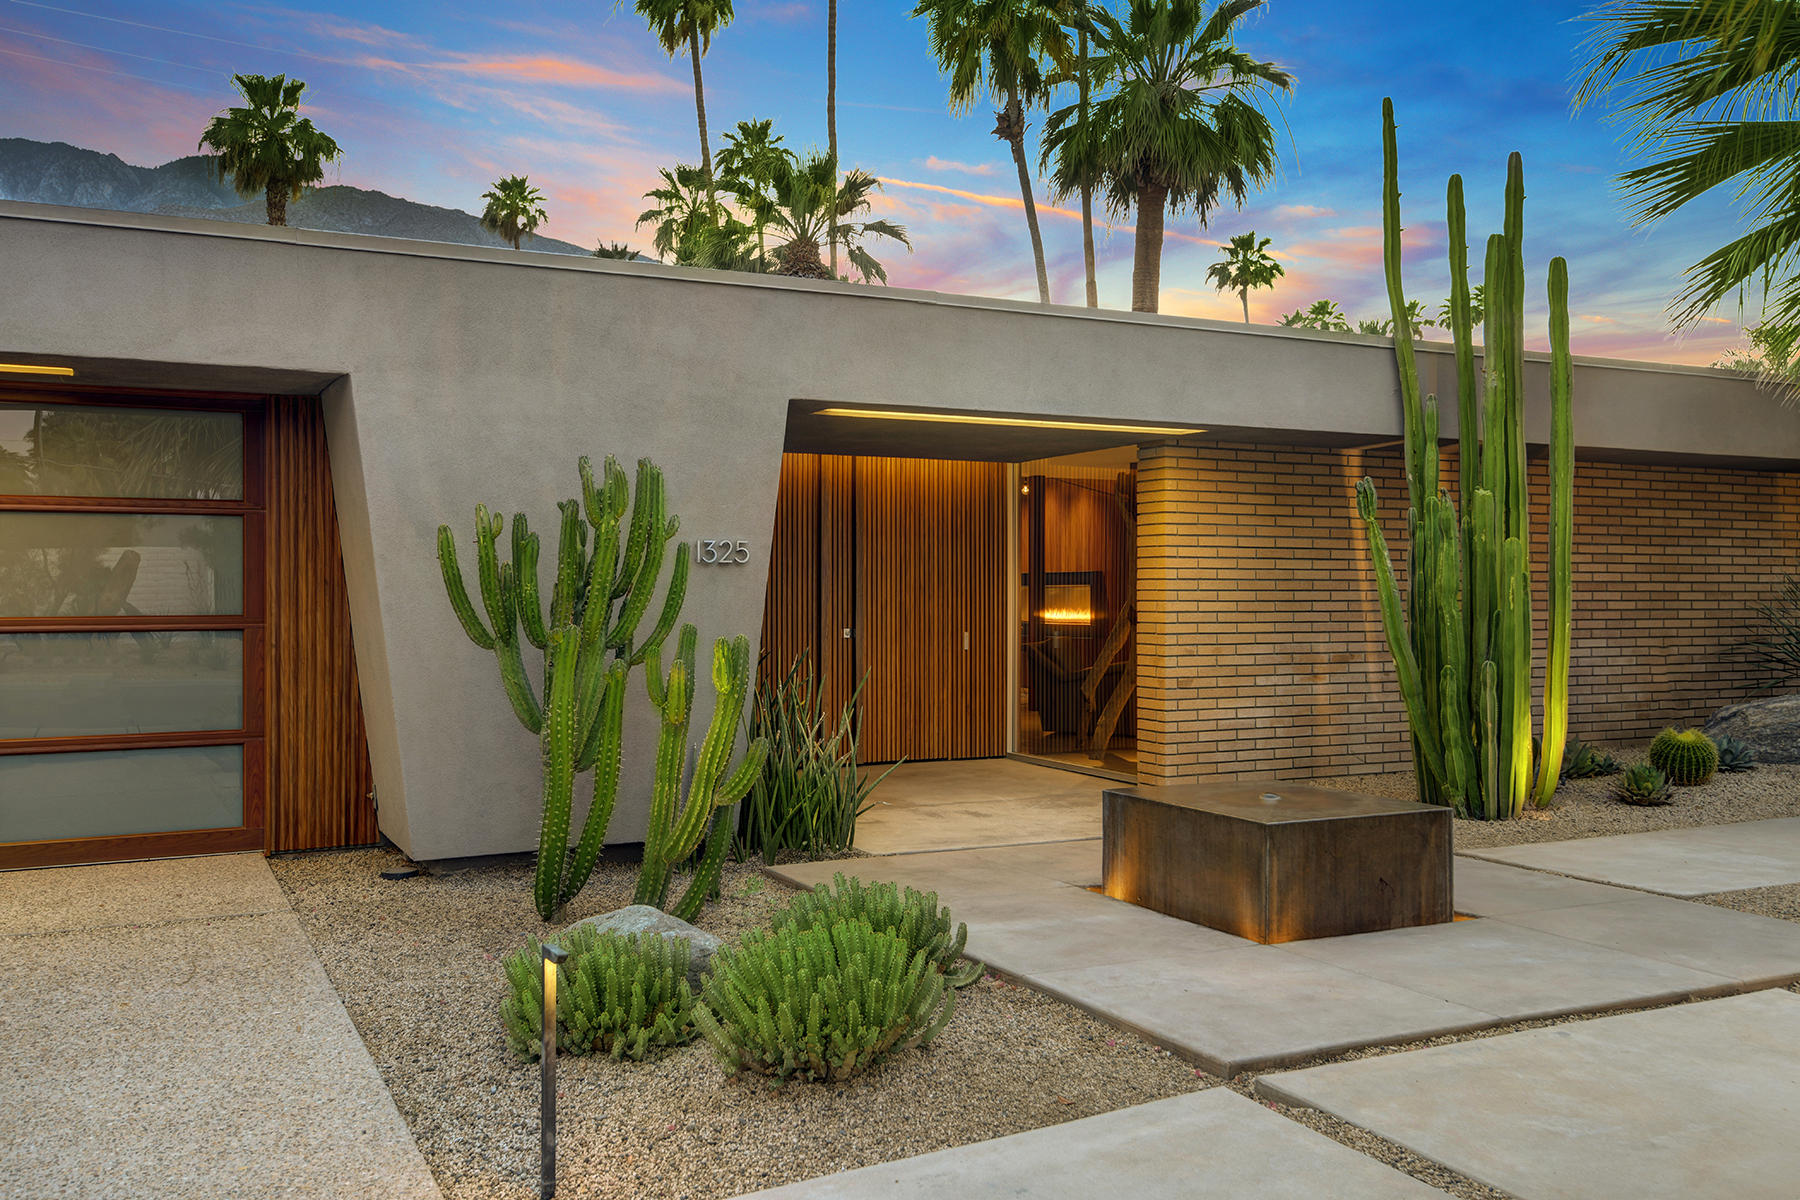 Image Number 1 for 1325 S Sagebrush Road in Palm Springs